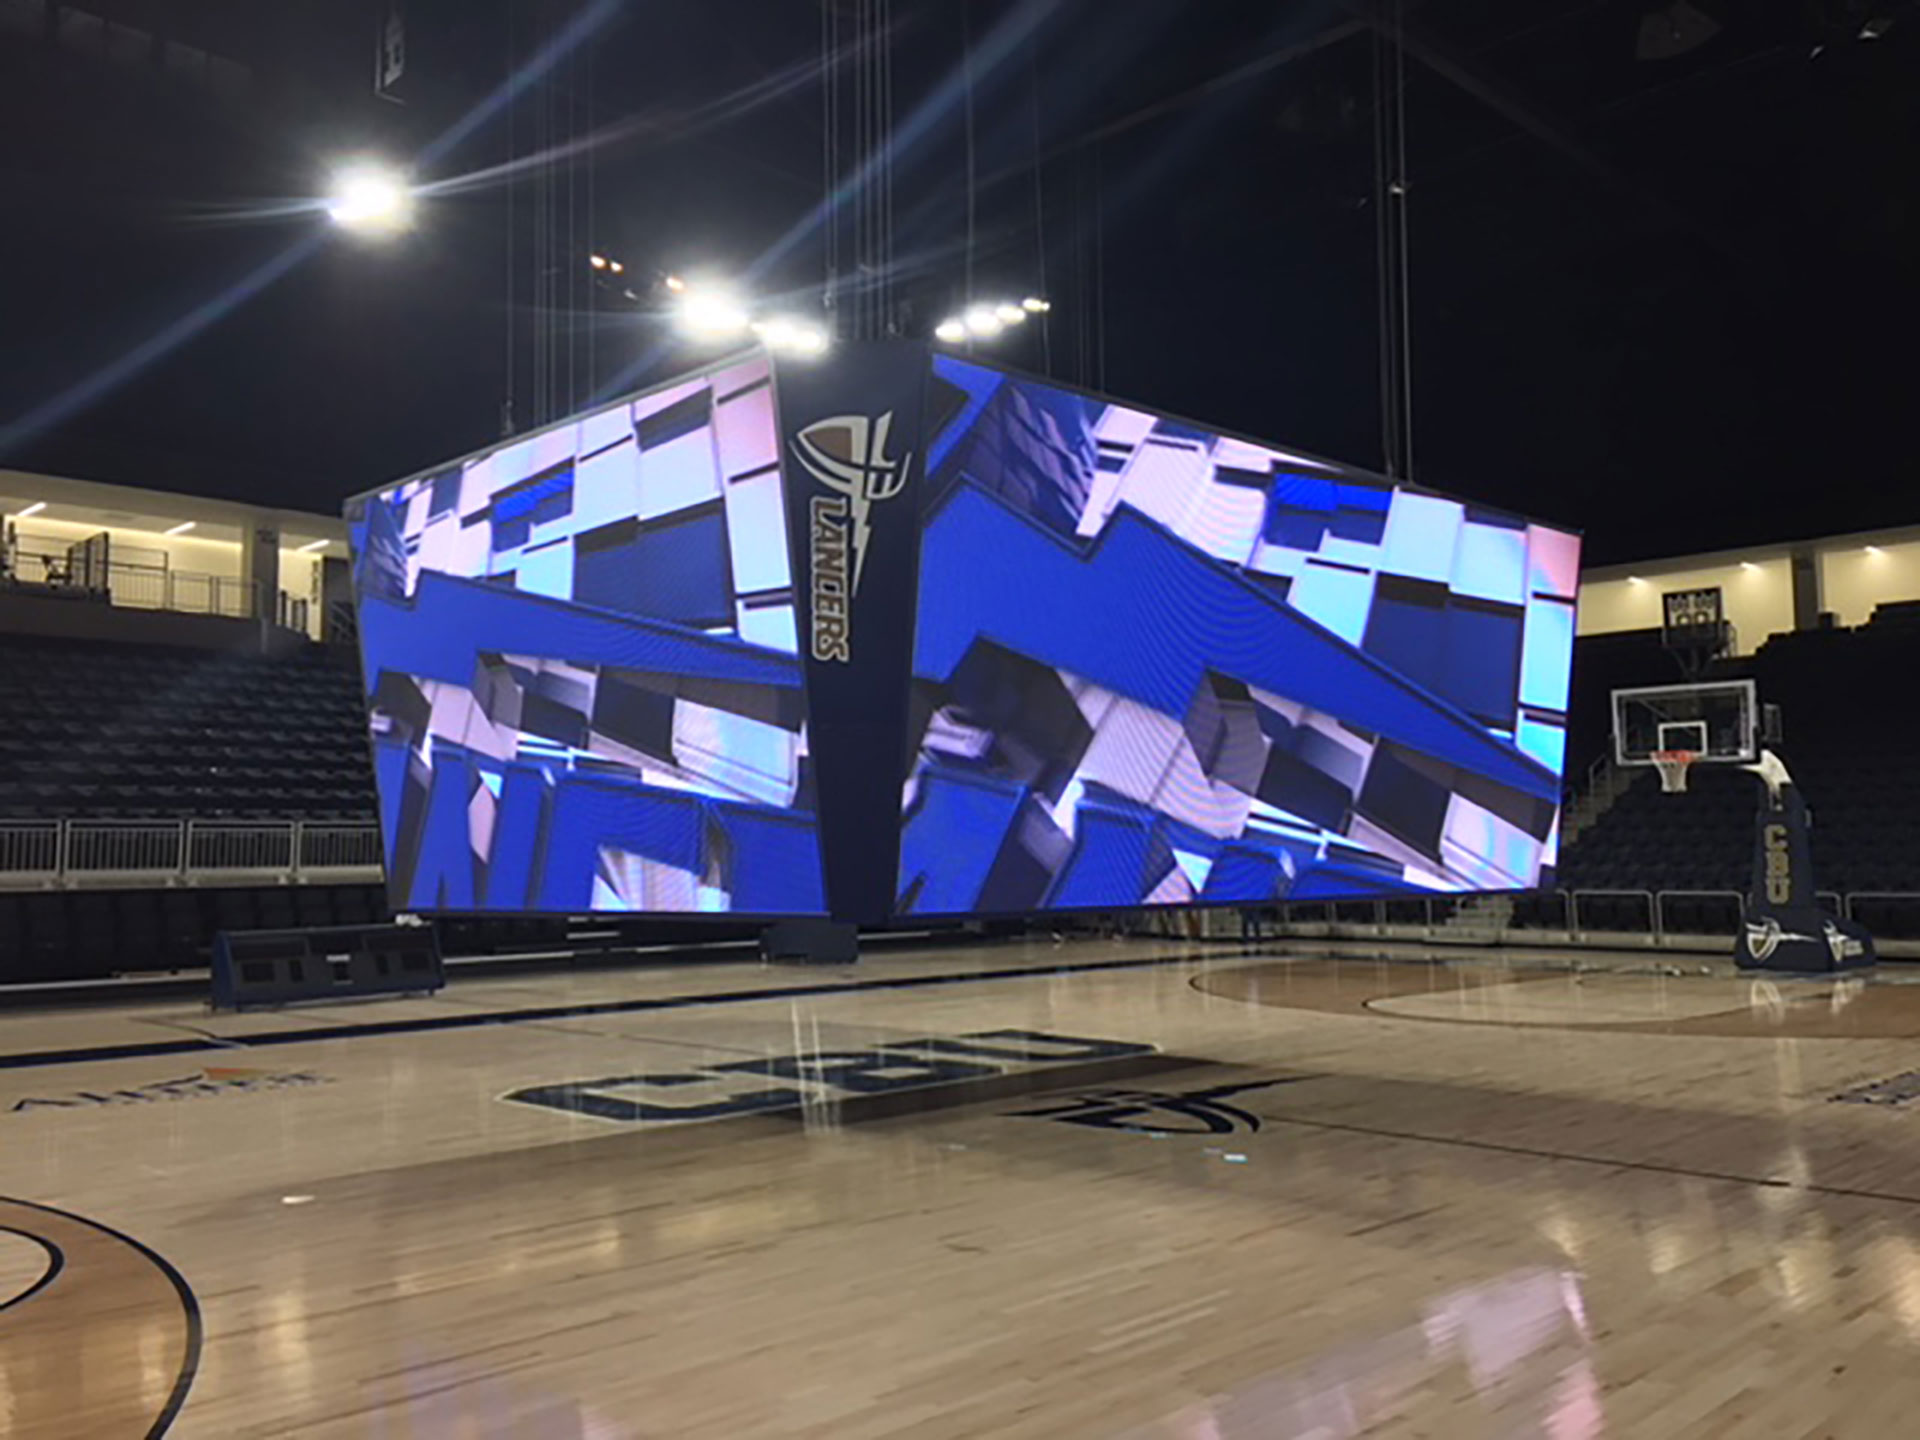 Video Board and LED Display